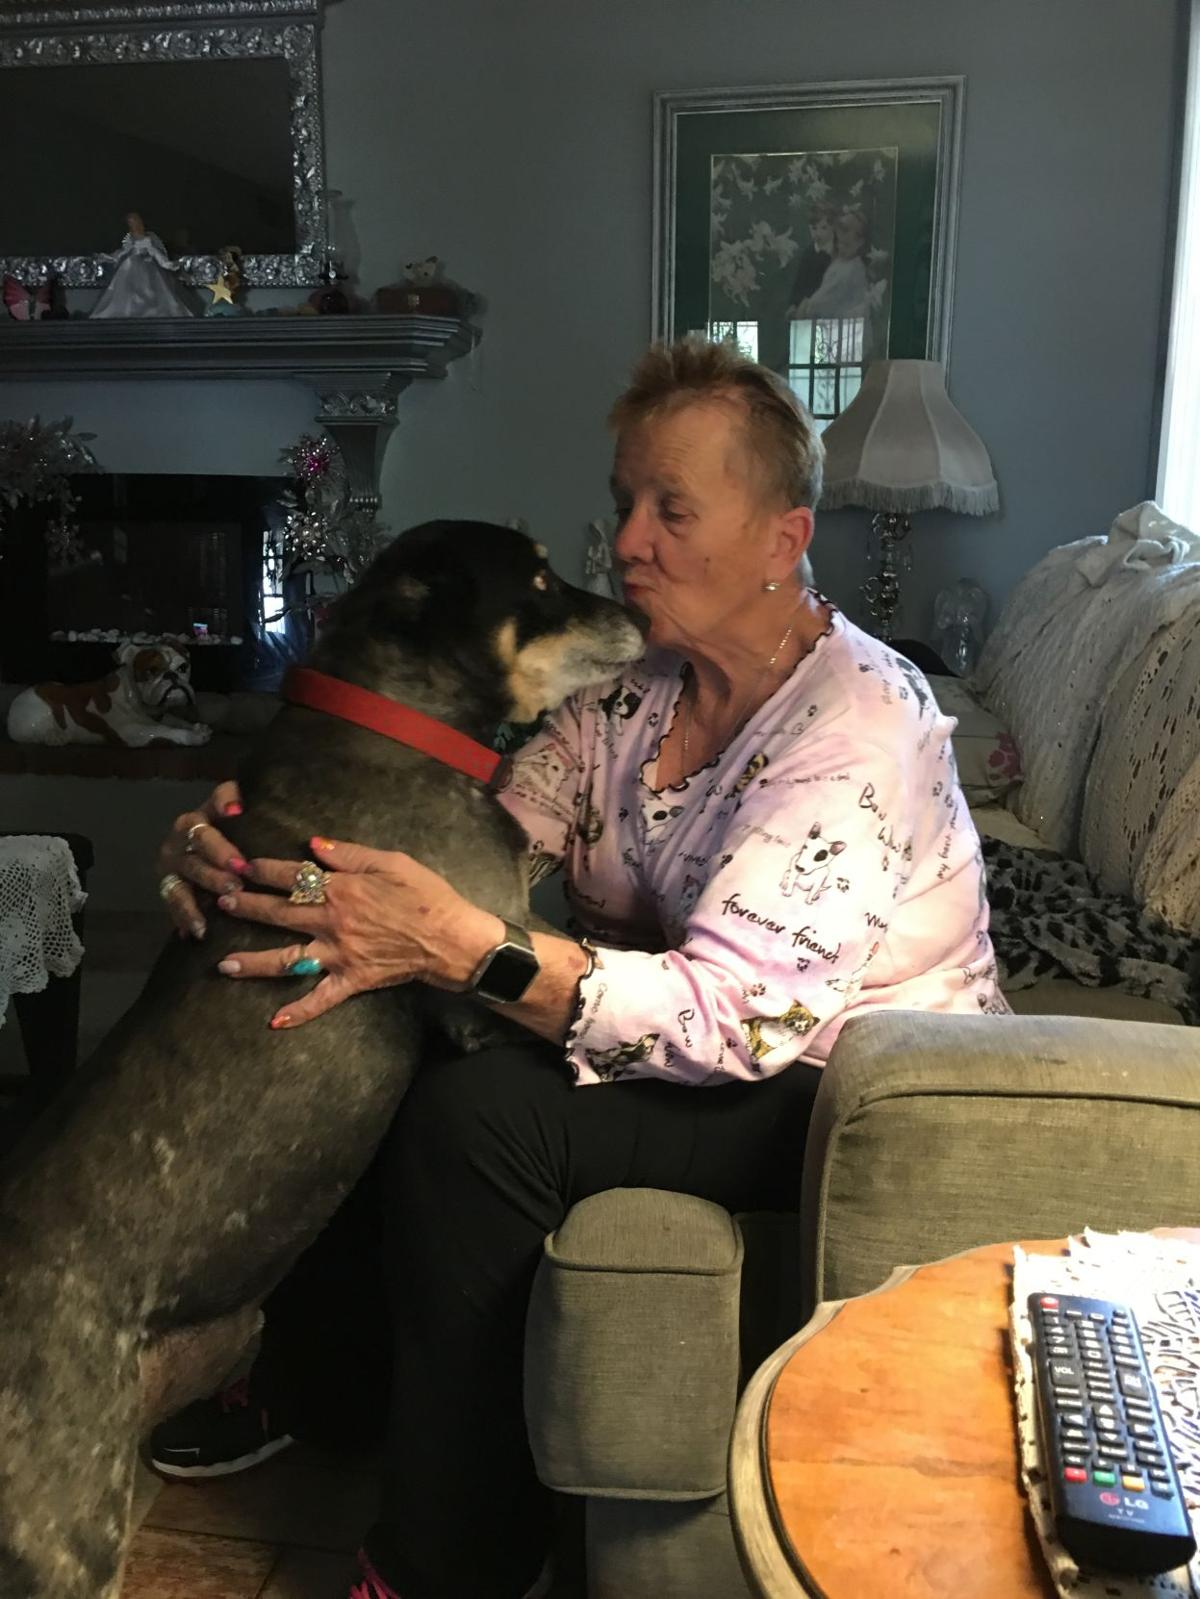 An Ahwatukee resident since 1989, Marsh said she and her four employees, with a combined 40 years of field experience, are bonded and trained.